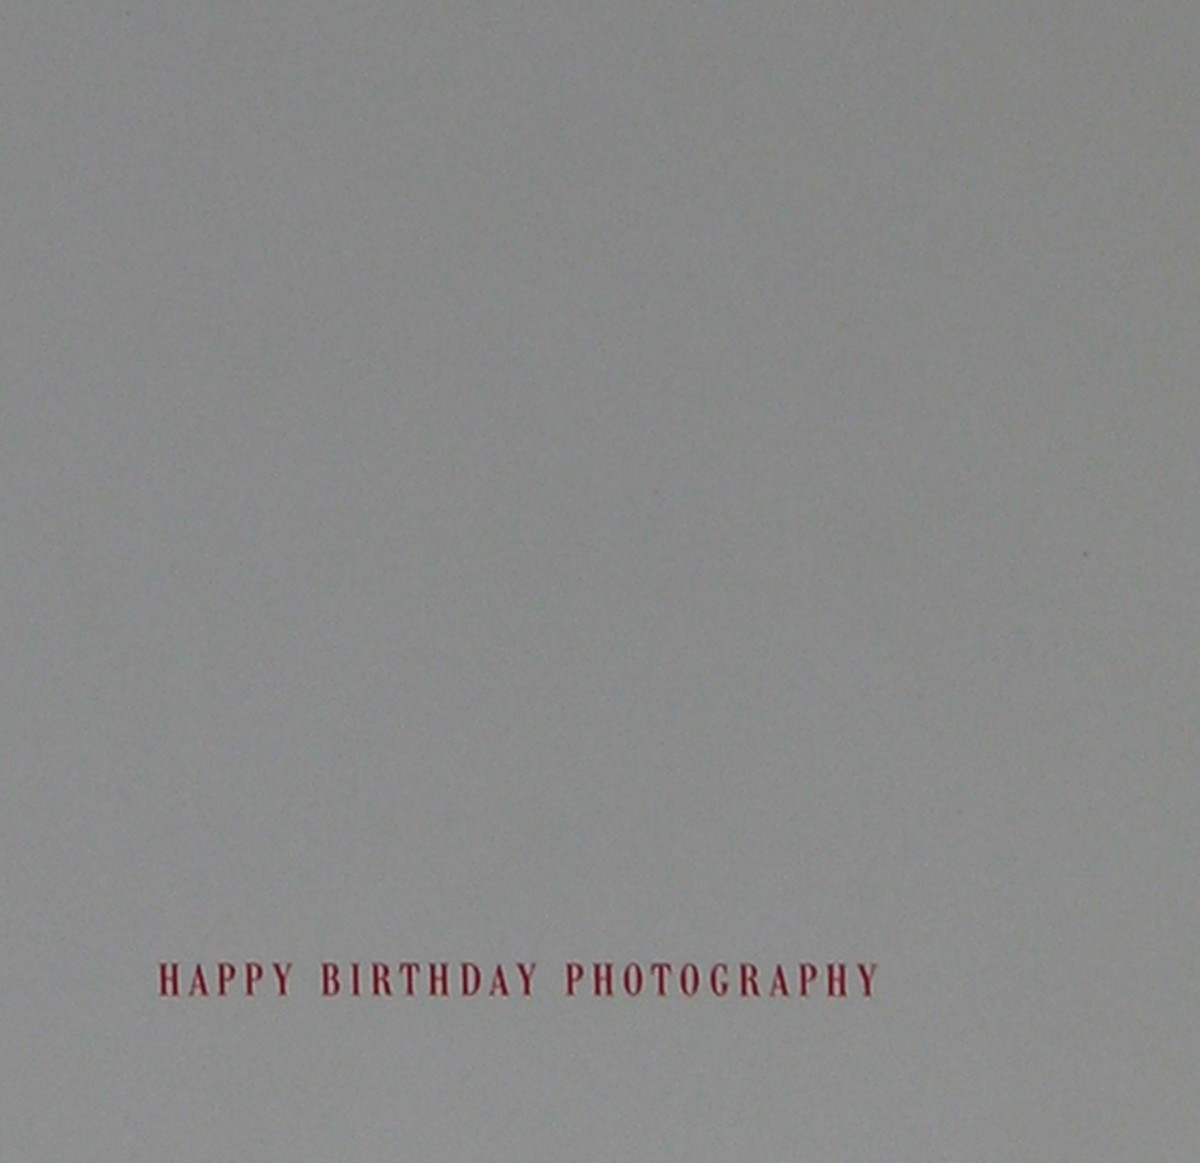 happy-birthday-photography_françoise-paviot